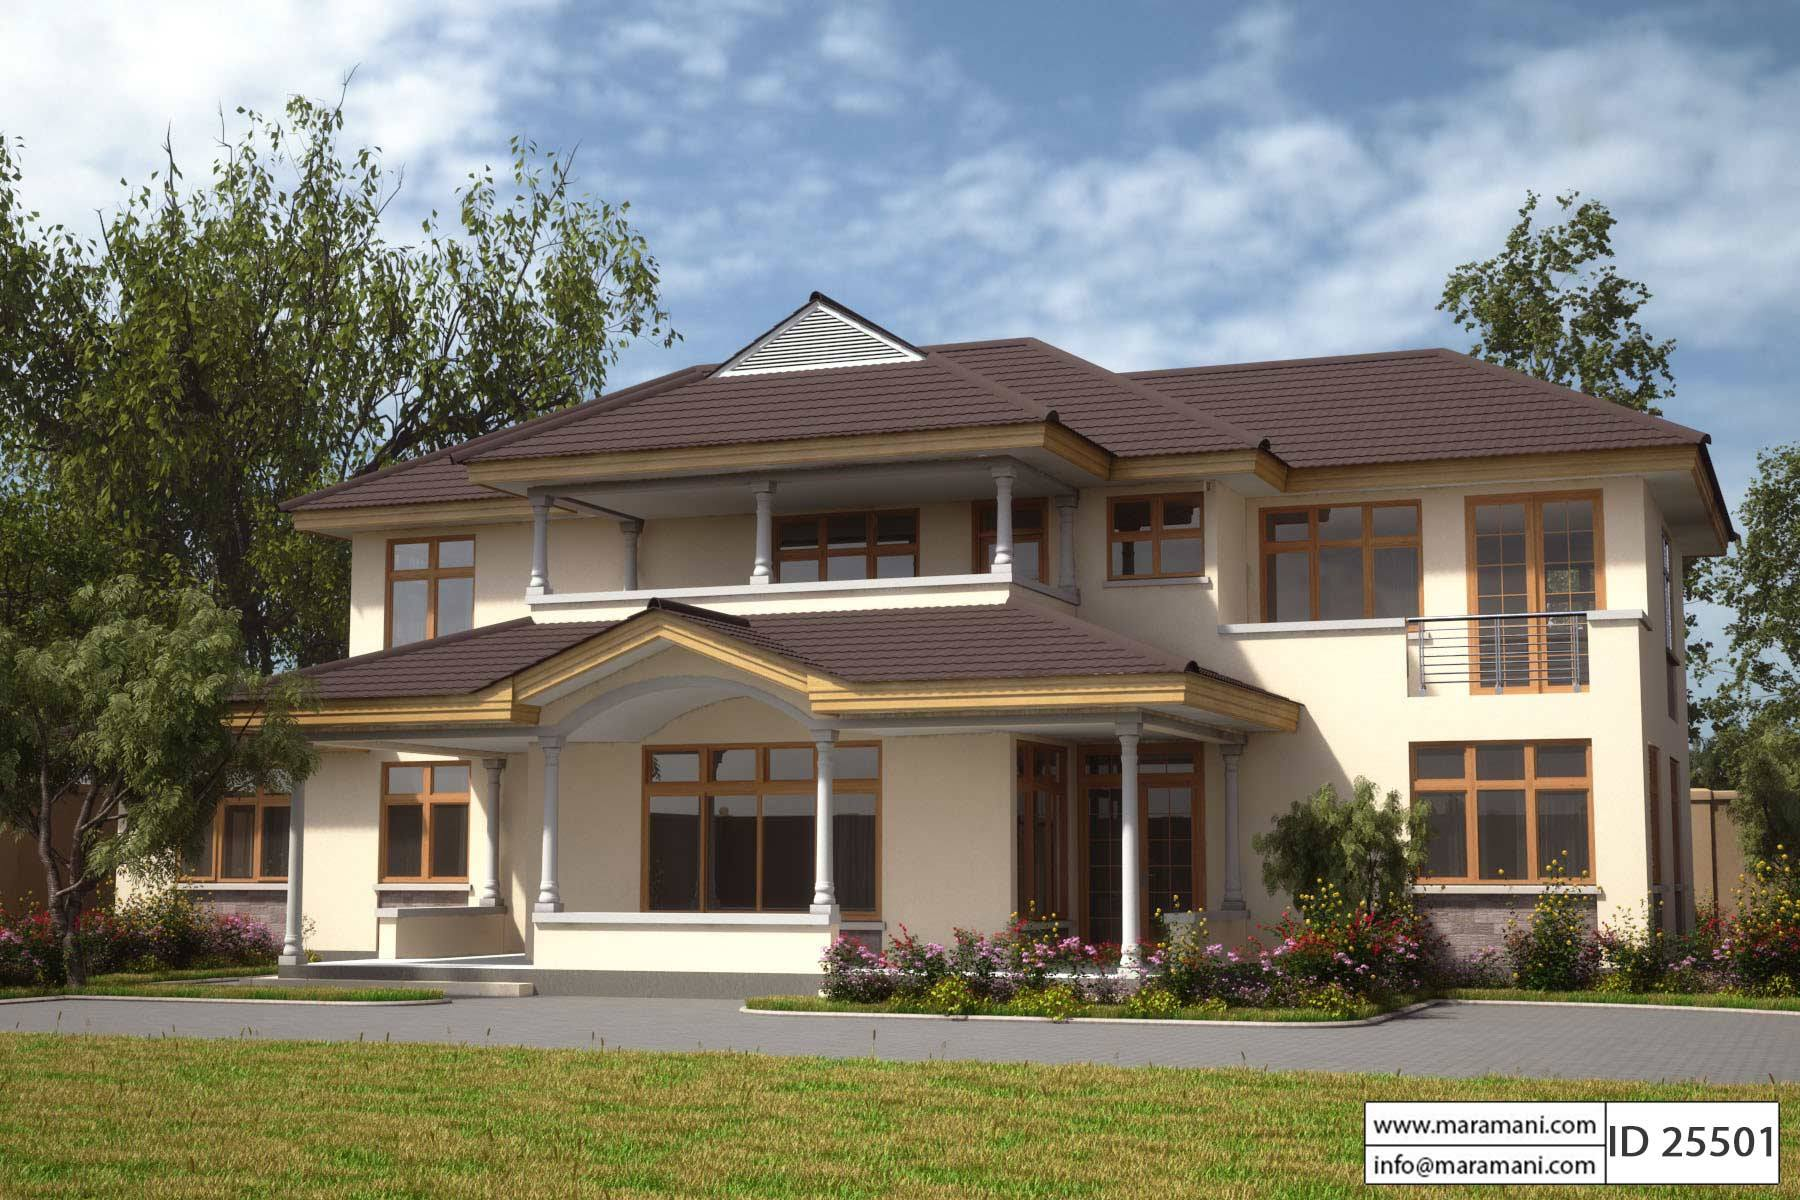 5 bedroom house plan with bonus room id 25501 plans by for Five bedroom house